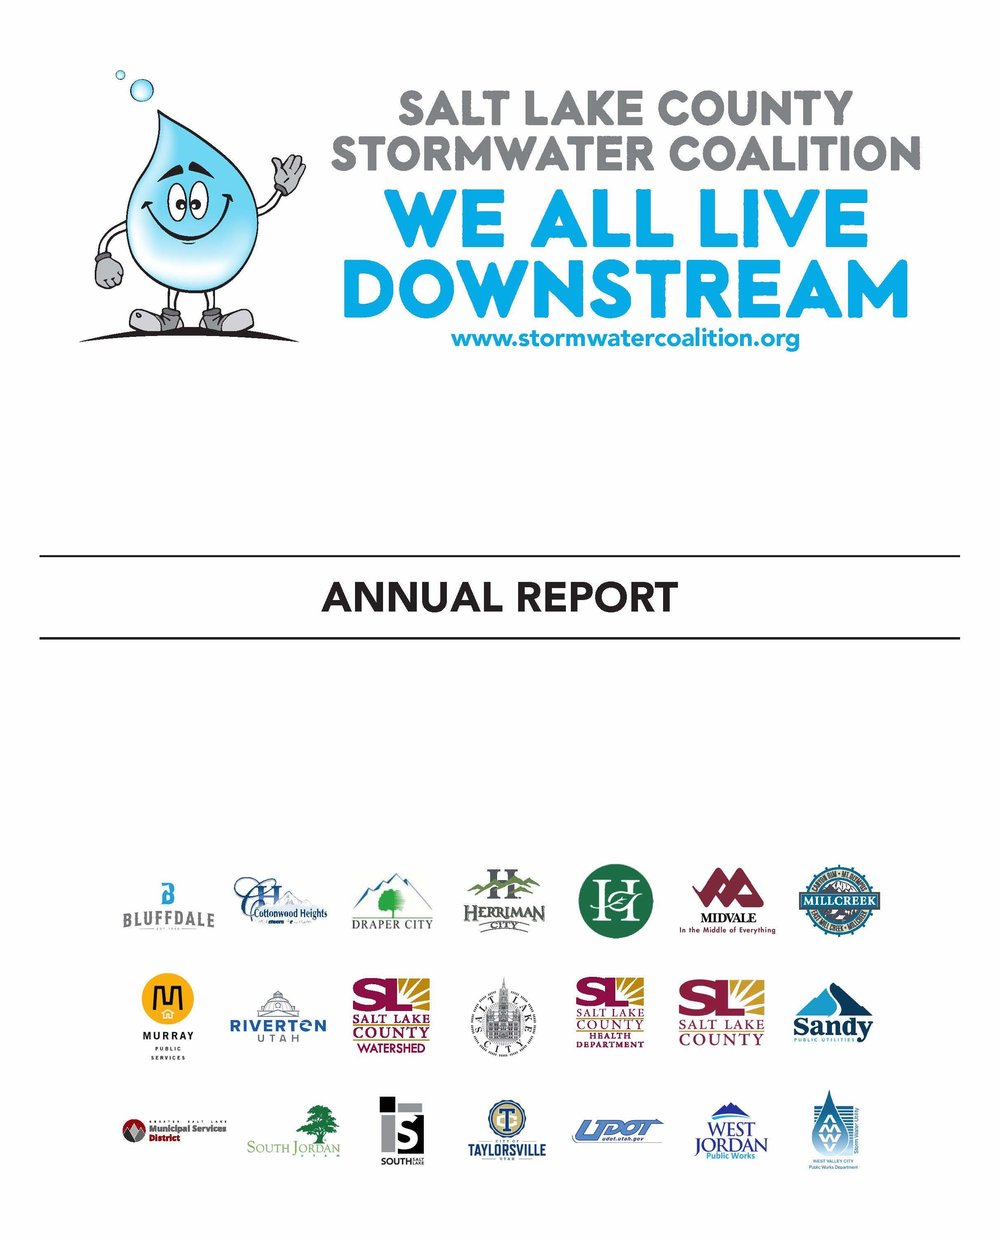 2018 Annual Report Overview - The 2018 Annual report covers the Jordan Valley Municipalities within Salt Lake County and public information and education core program (from July 1, 2017 to June 30, 2018). In the next year and beyond, by implementing these changes, Salt Lake County Stormwater Coalition will improve its strategy to educate a larger portion of the general public over the next year. Through implementation of a Non-Technical Information Programs; Training Programs; Website, Social Media and Management; Guidance Documents, General Public Stormwater – Survey Report; Public Events; Media and Advertisements; Coalition Branding and Product Distribution; and Household Hazardous Waste (HHW) and Illicit Discharge Detection and Elimination (IDDE), Salt Lake County Stormwater Coalition will differentiate themselves and meet the requirements for the UPDES stormwater permit and impact behavior change in Salt Lake County.